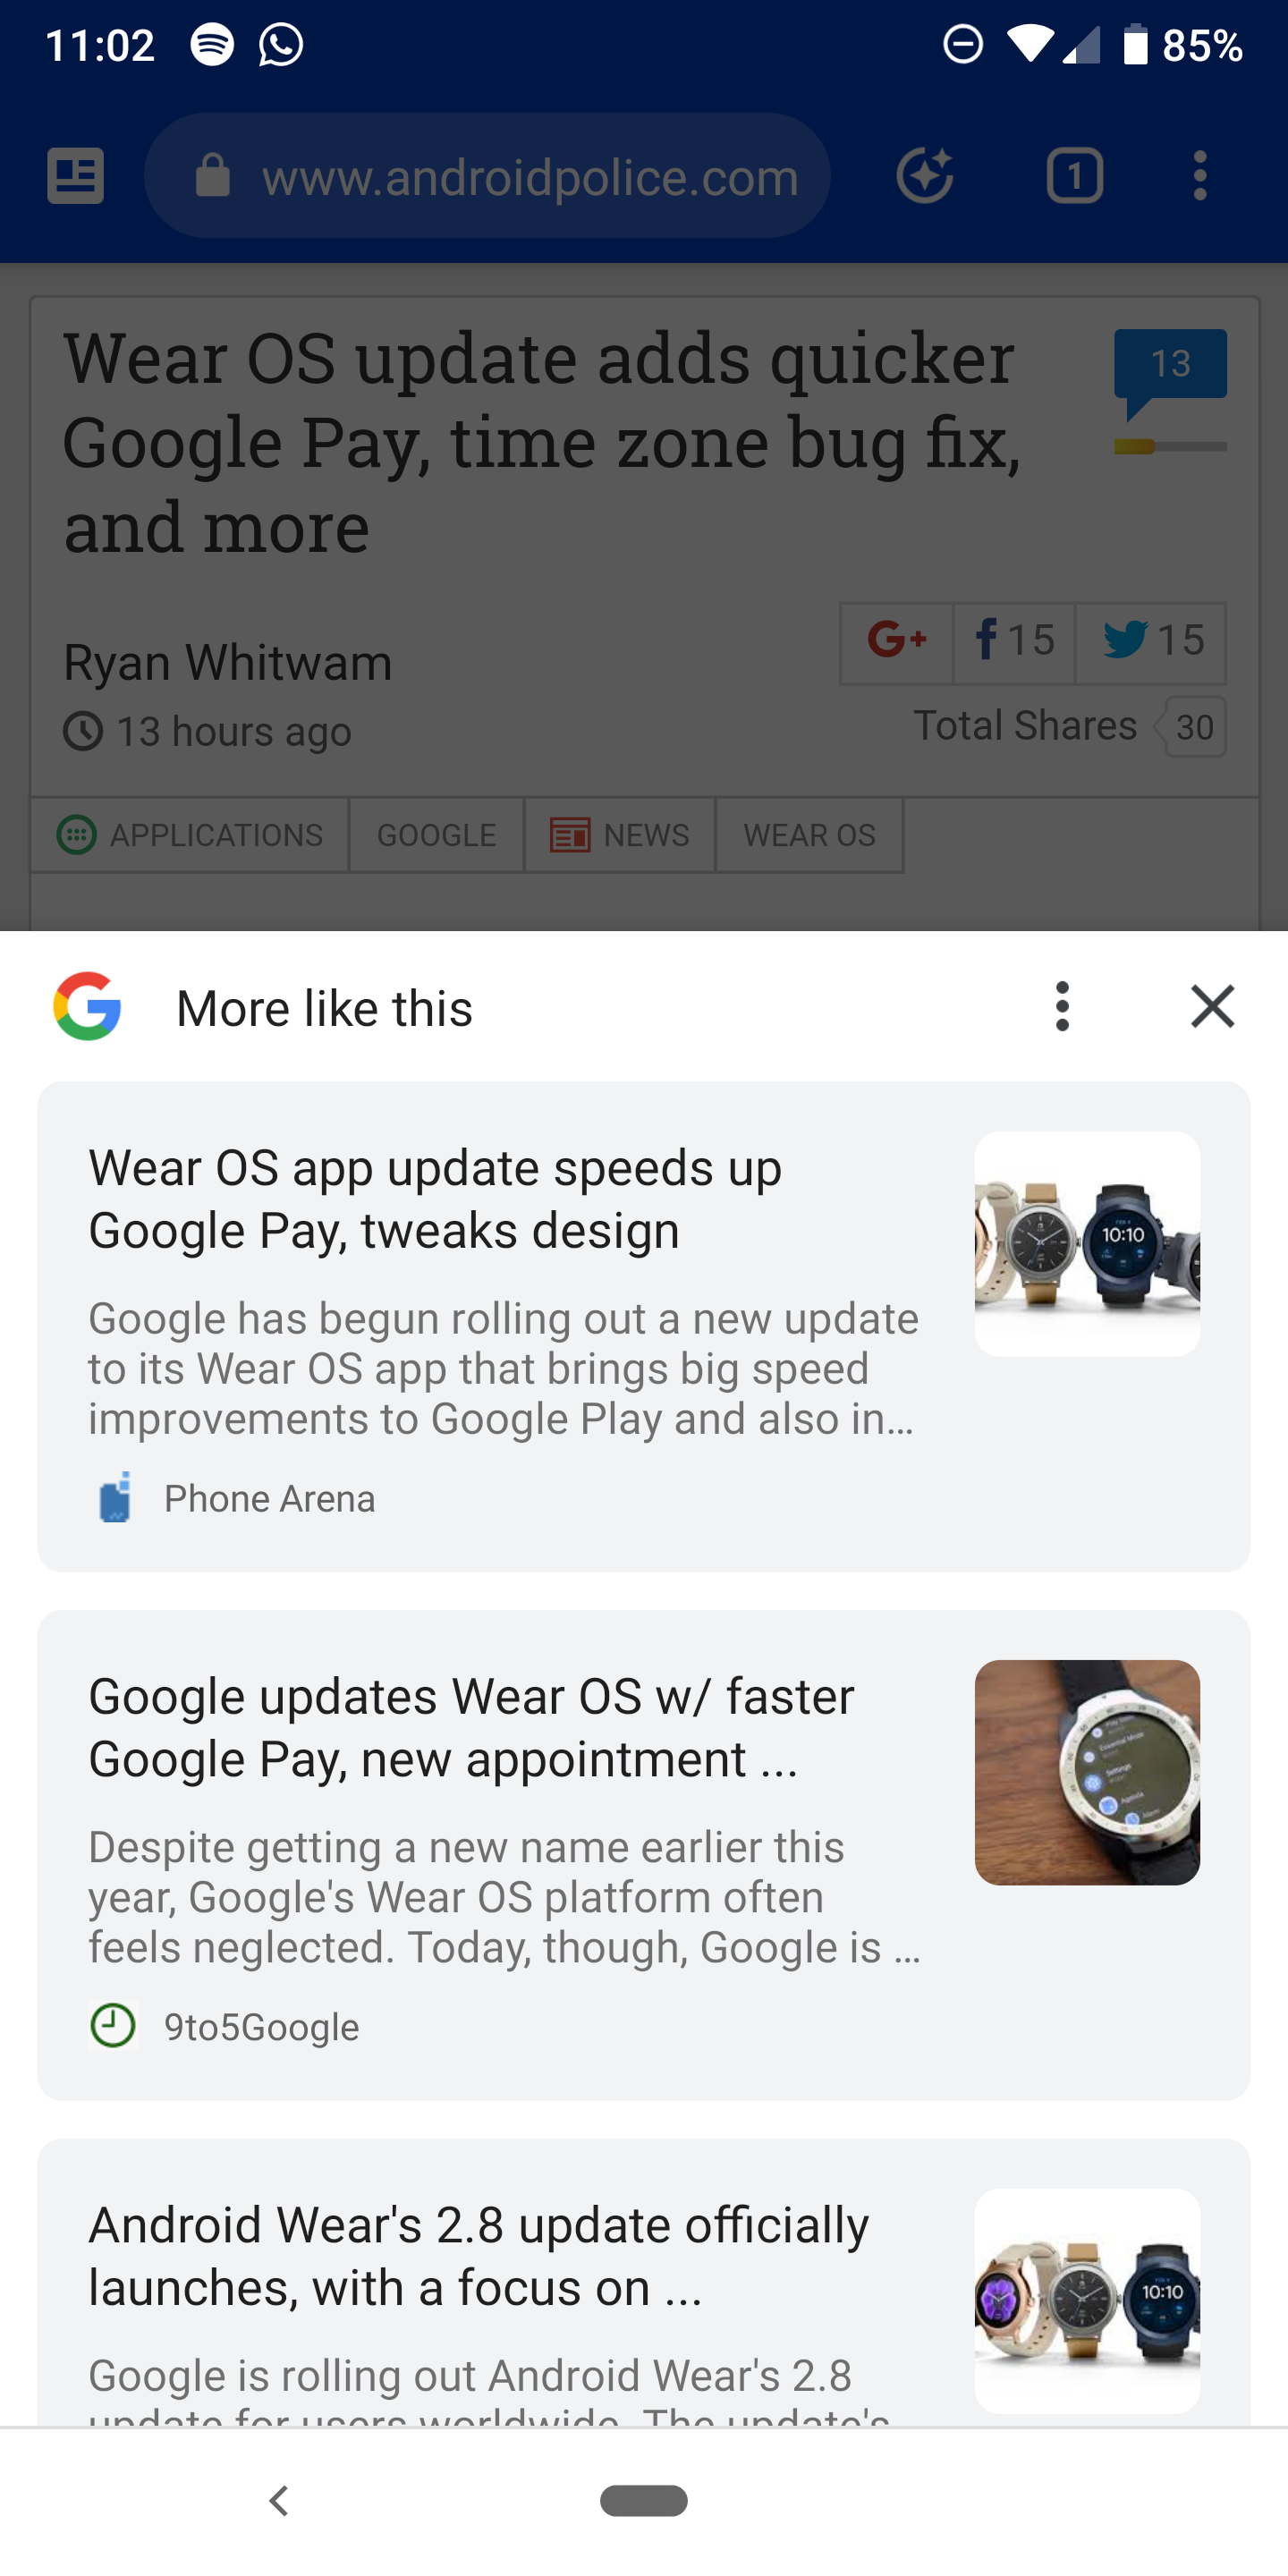 Google Chrome starts suggesting more articles like the one